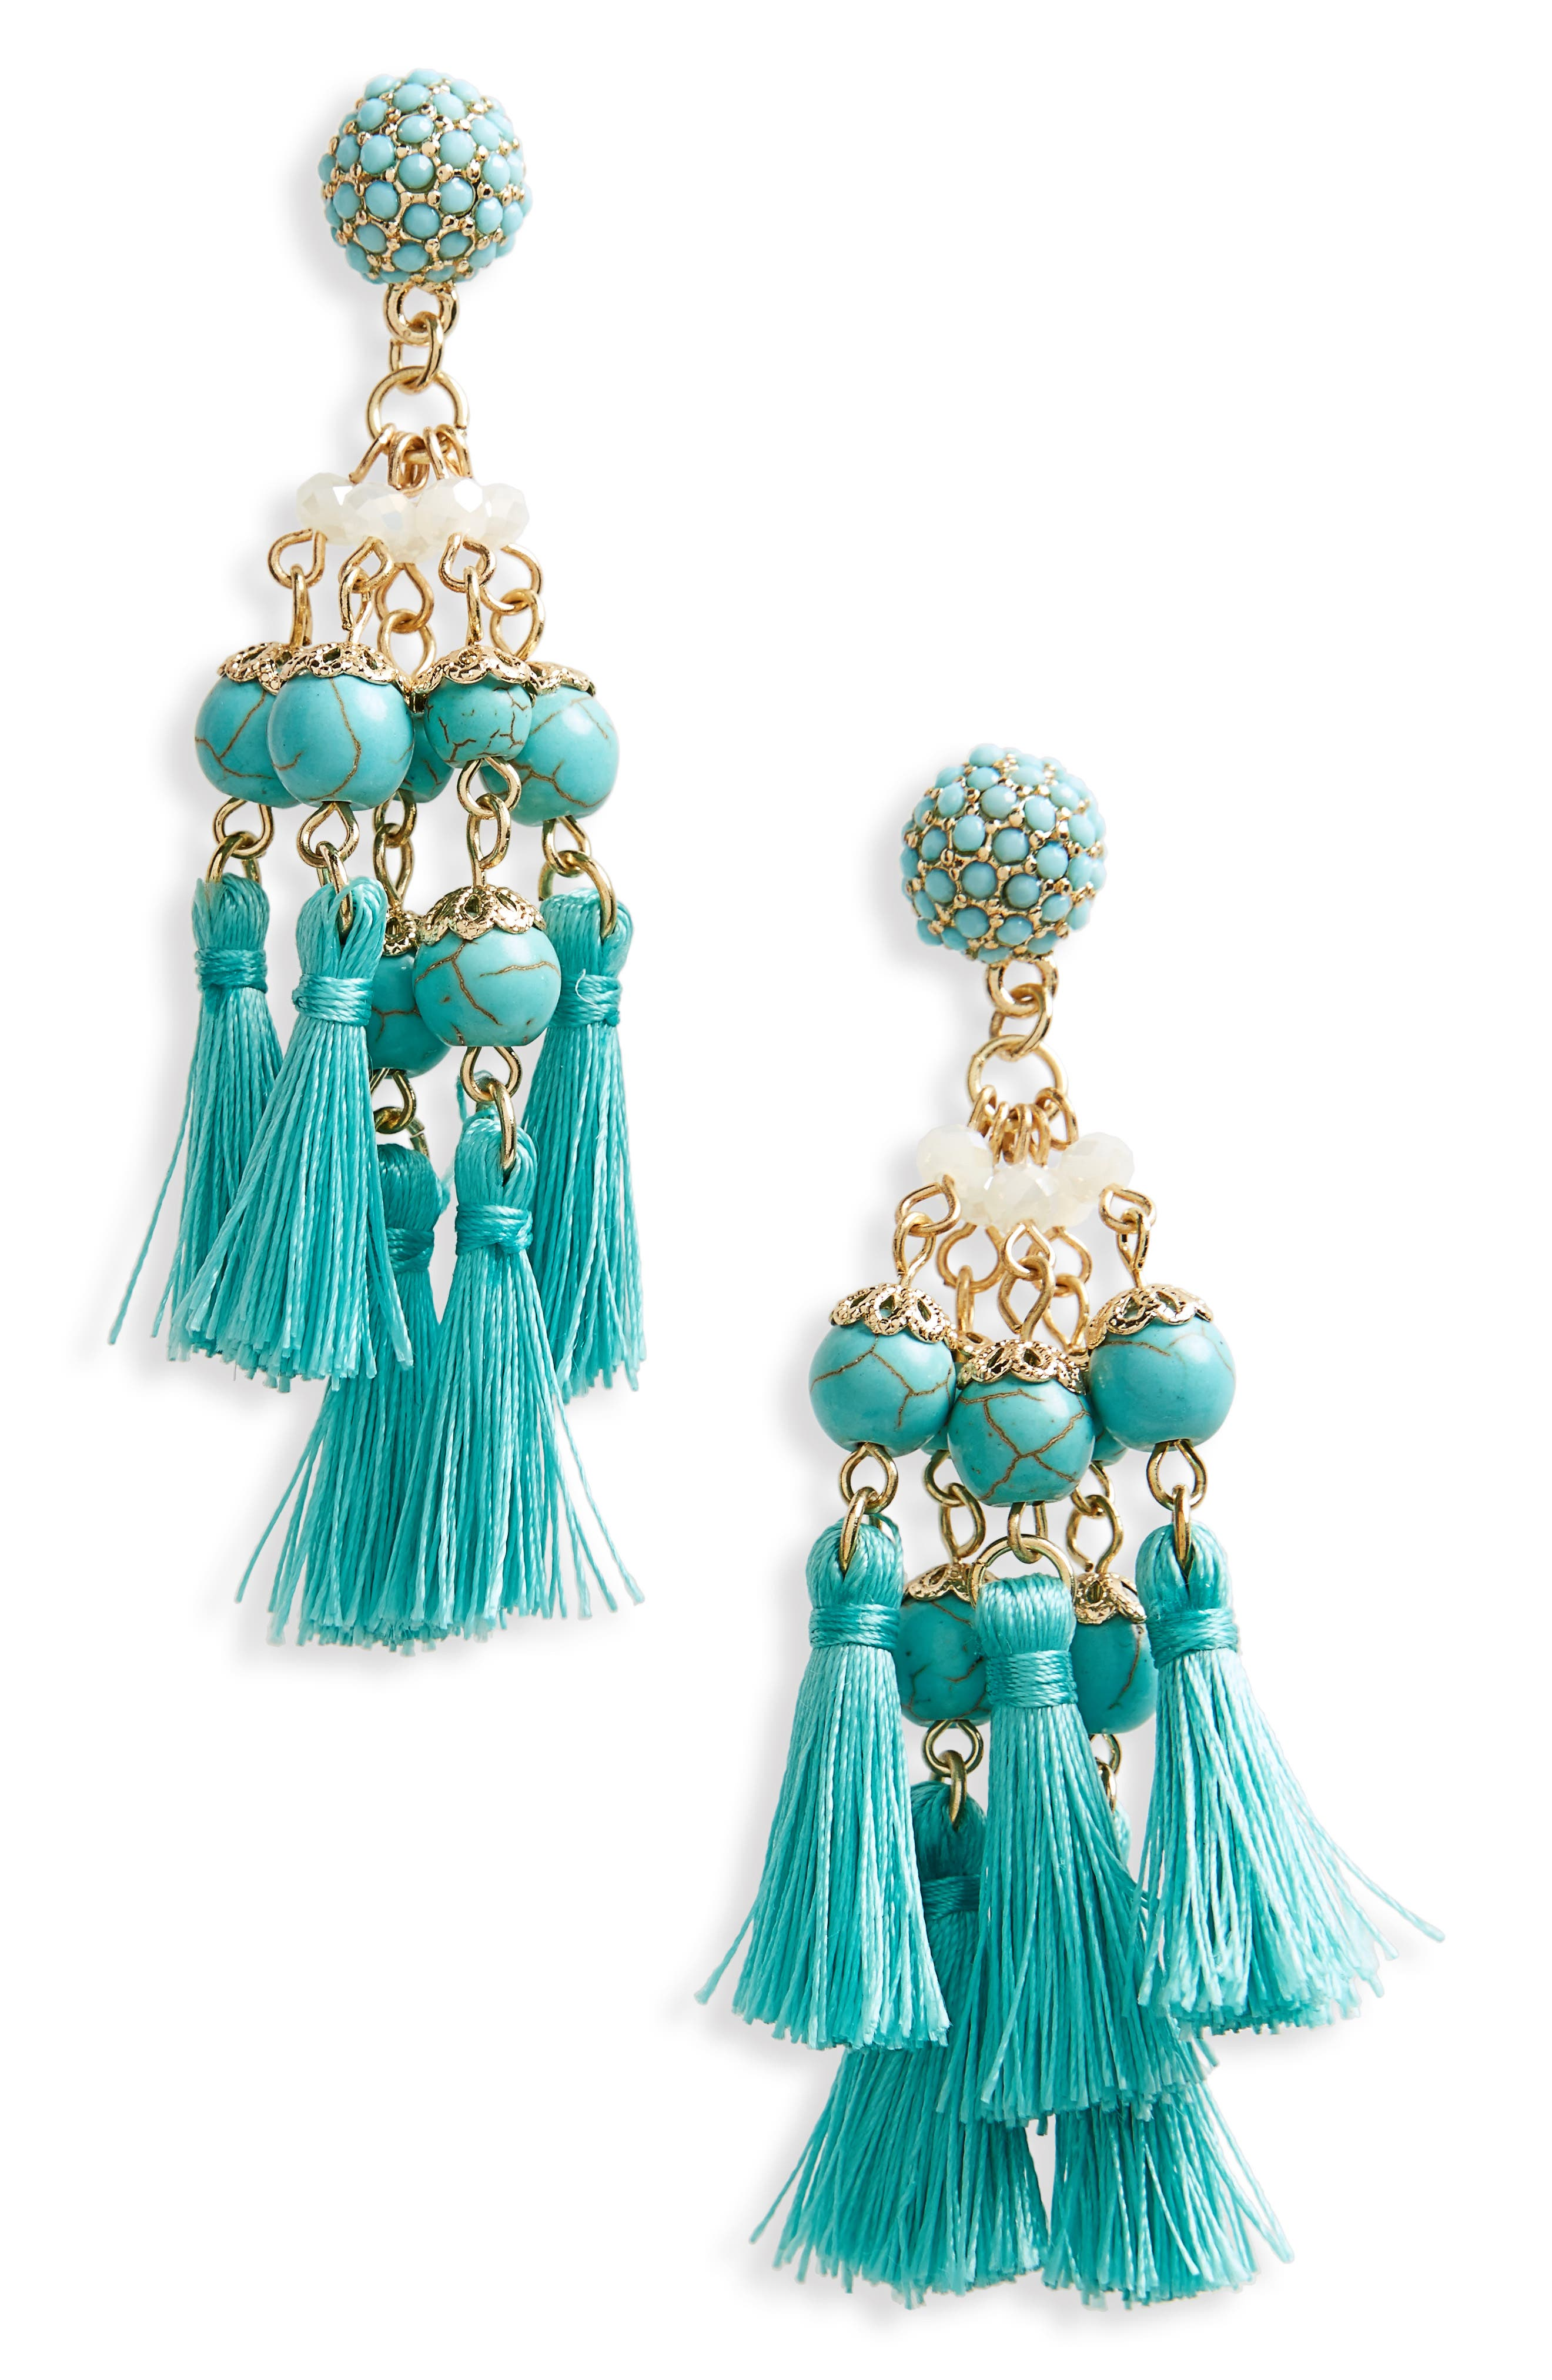 Tassel Howlite Bead Earrings,                             Main thumbnail 1, color,                             Turquoise